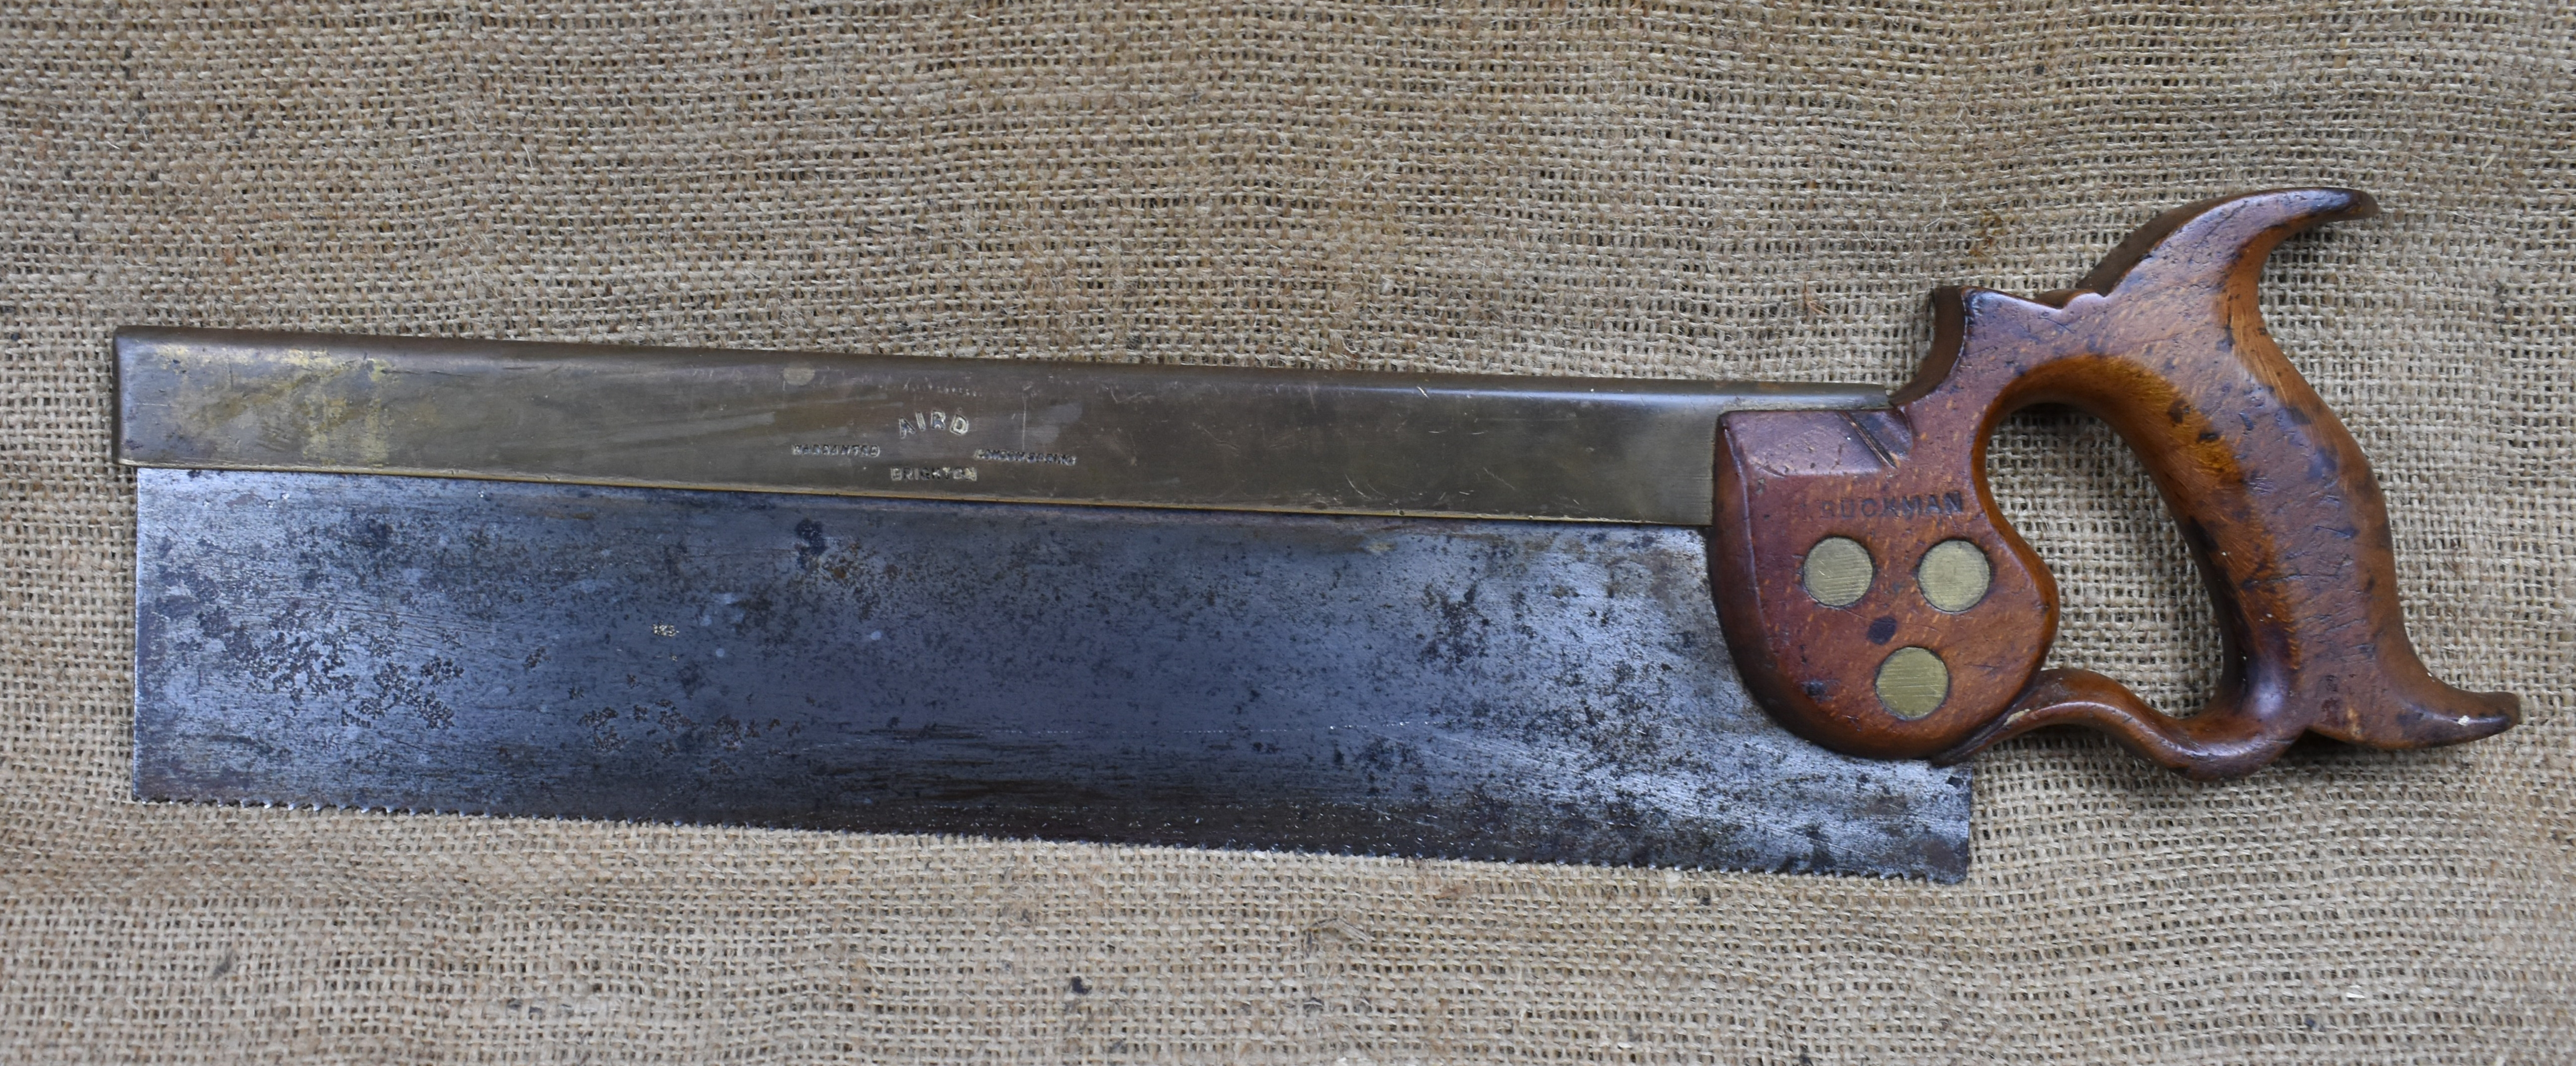 """14"""" Brass Backed Tenon Saw. Marked 'Warranted London Spring' and 'Aird, Brighton'"""